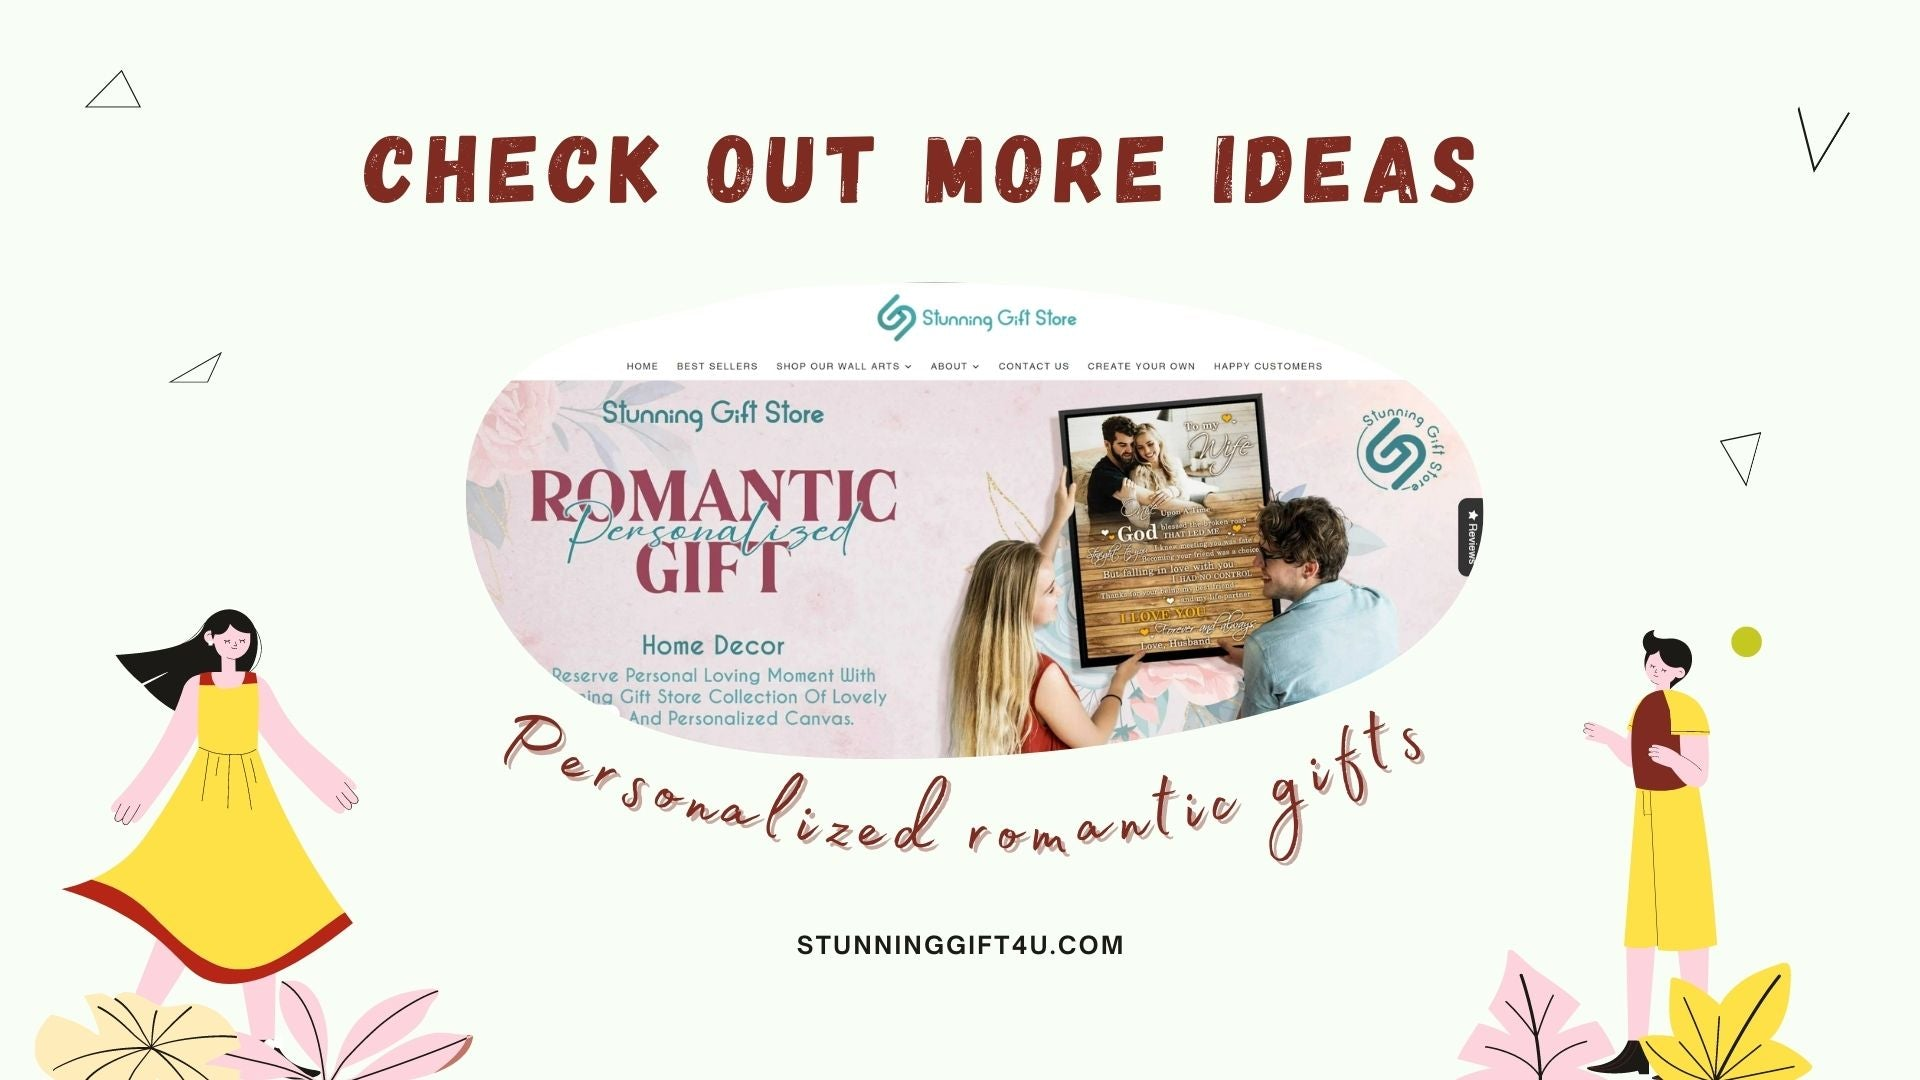 check out more ideas with personalized romantic gifts